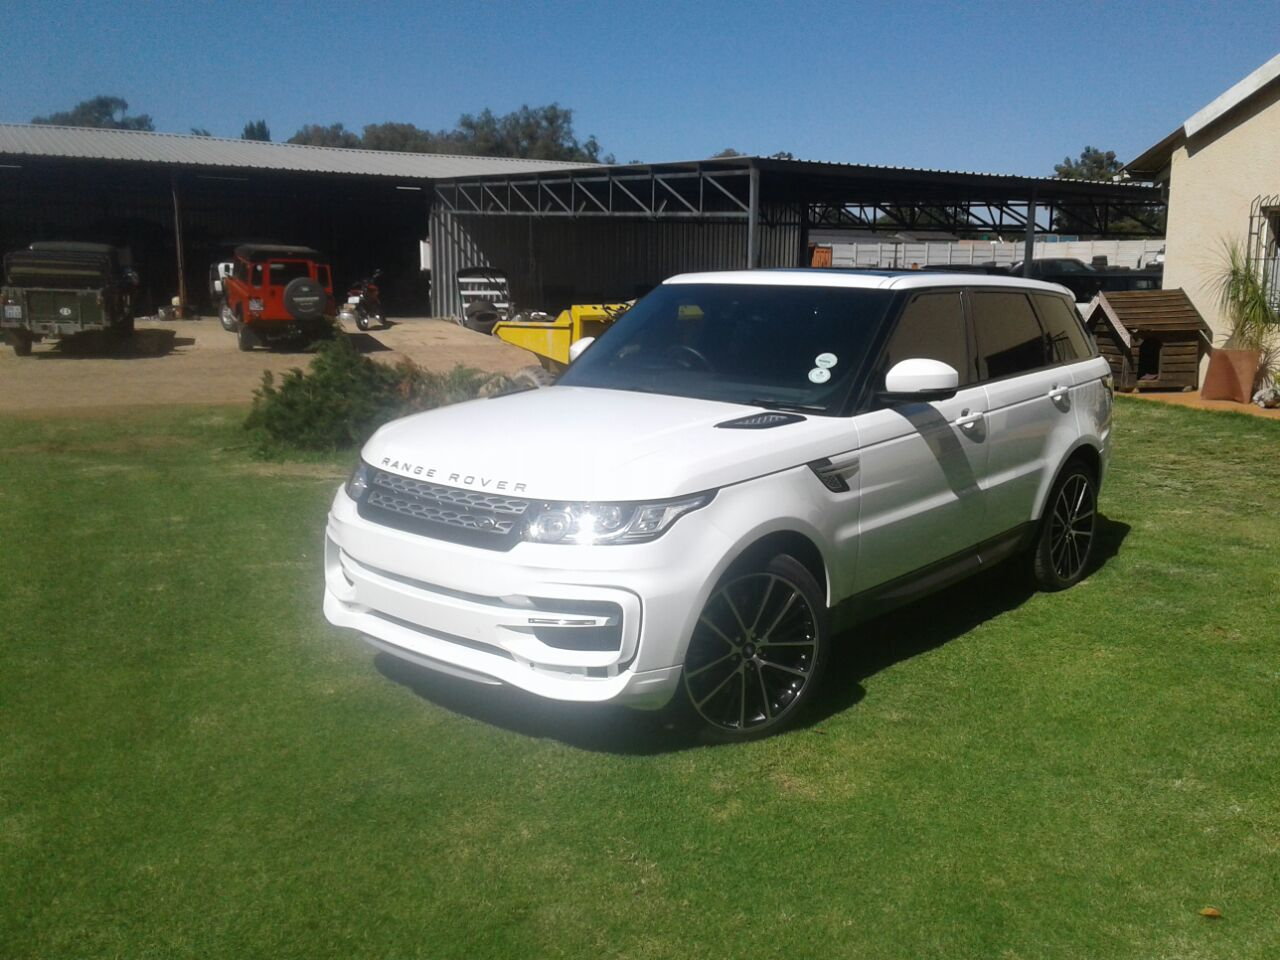 jack entertainment in Cars in South Africa | Junk Mail